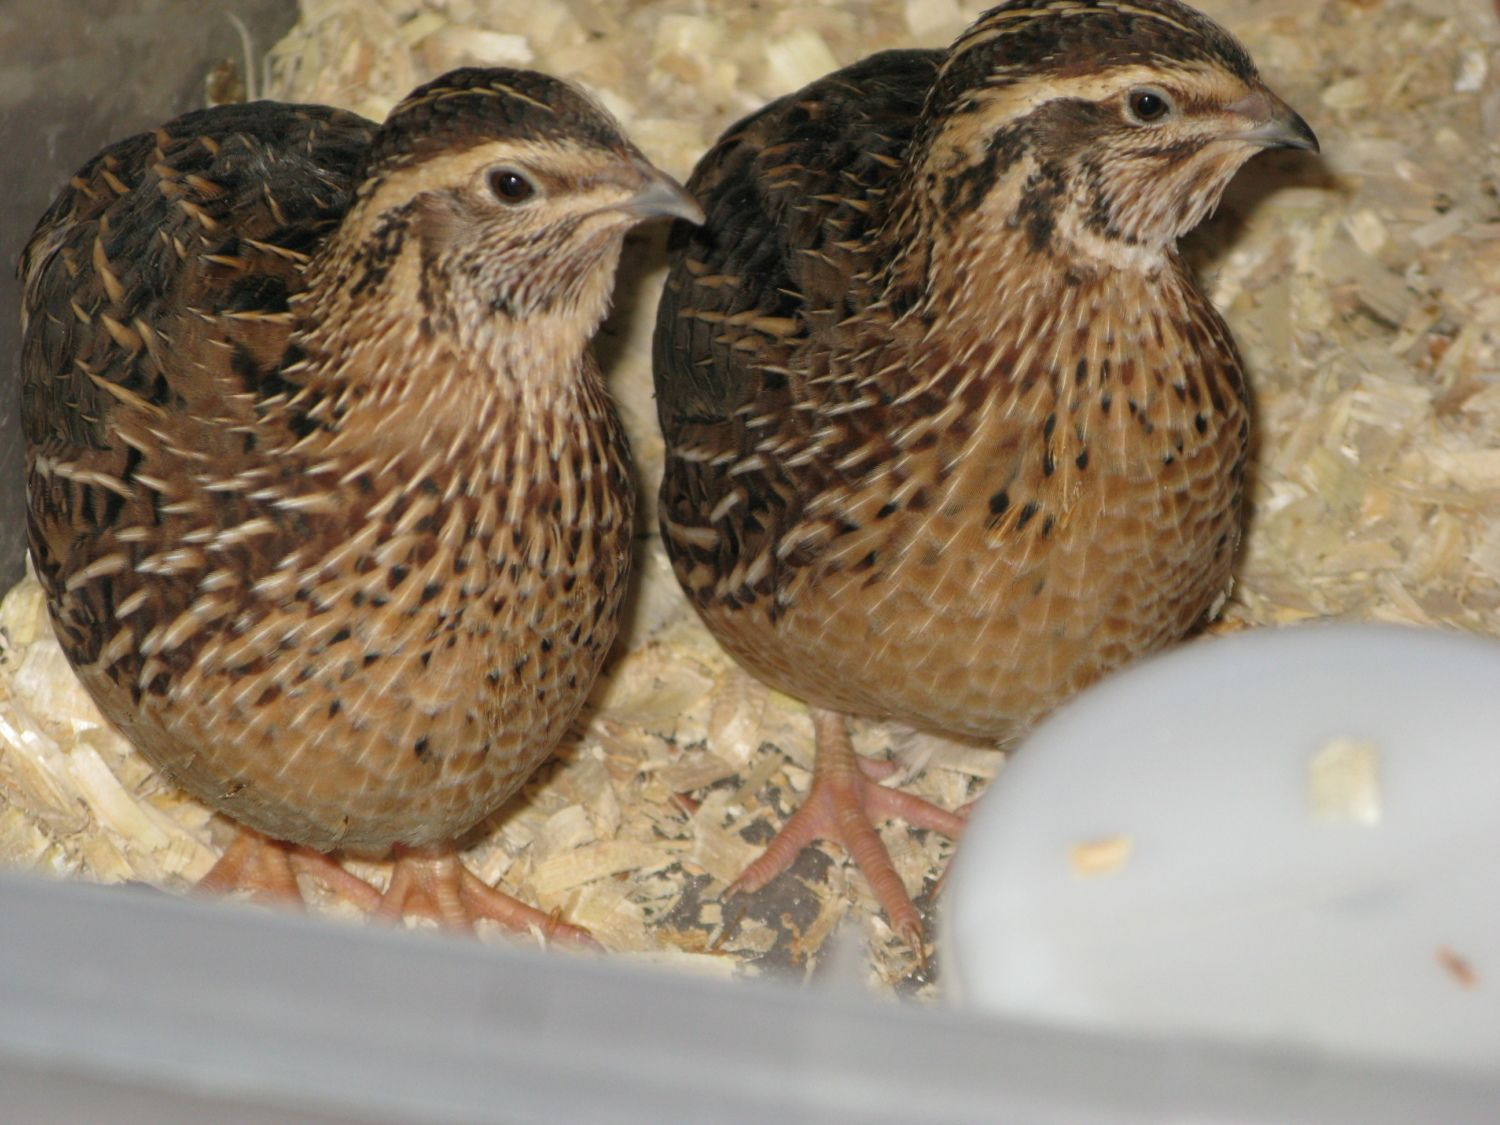 Jumbo coturnix quail - photo#4